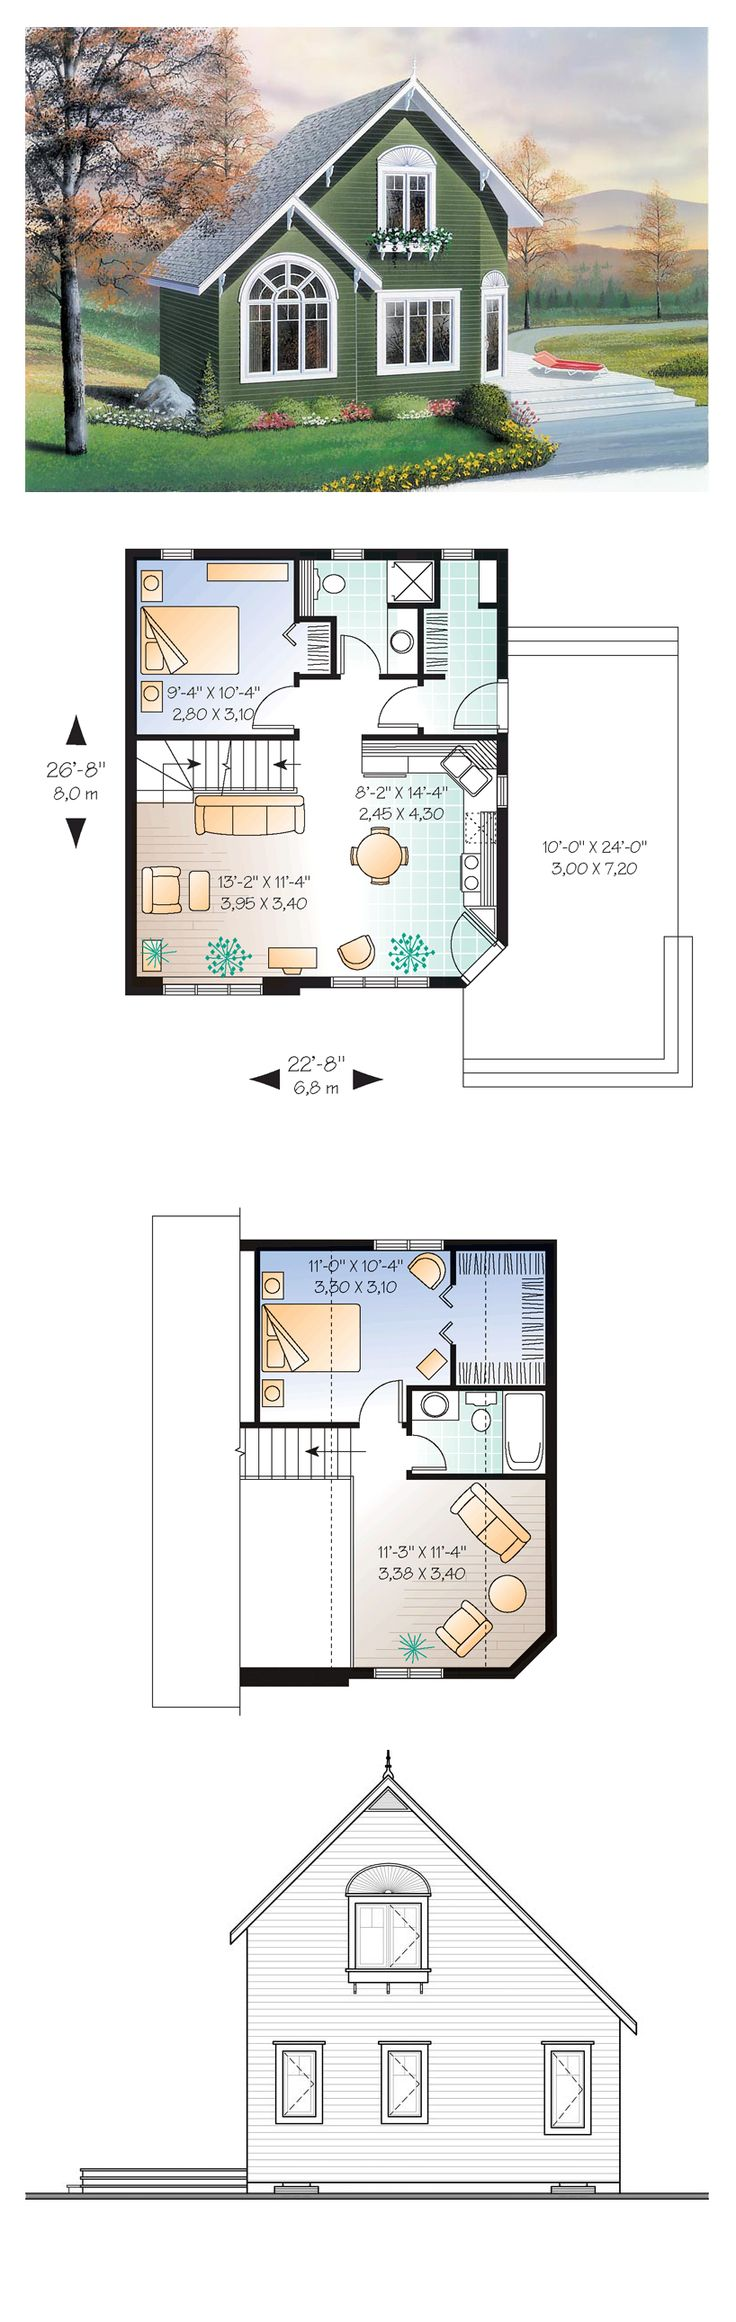 Best 25 small house layout ideas on pinterest small for 4 bedroom cottage house plans